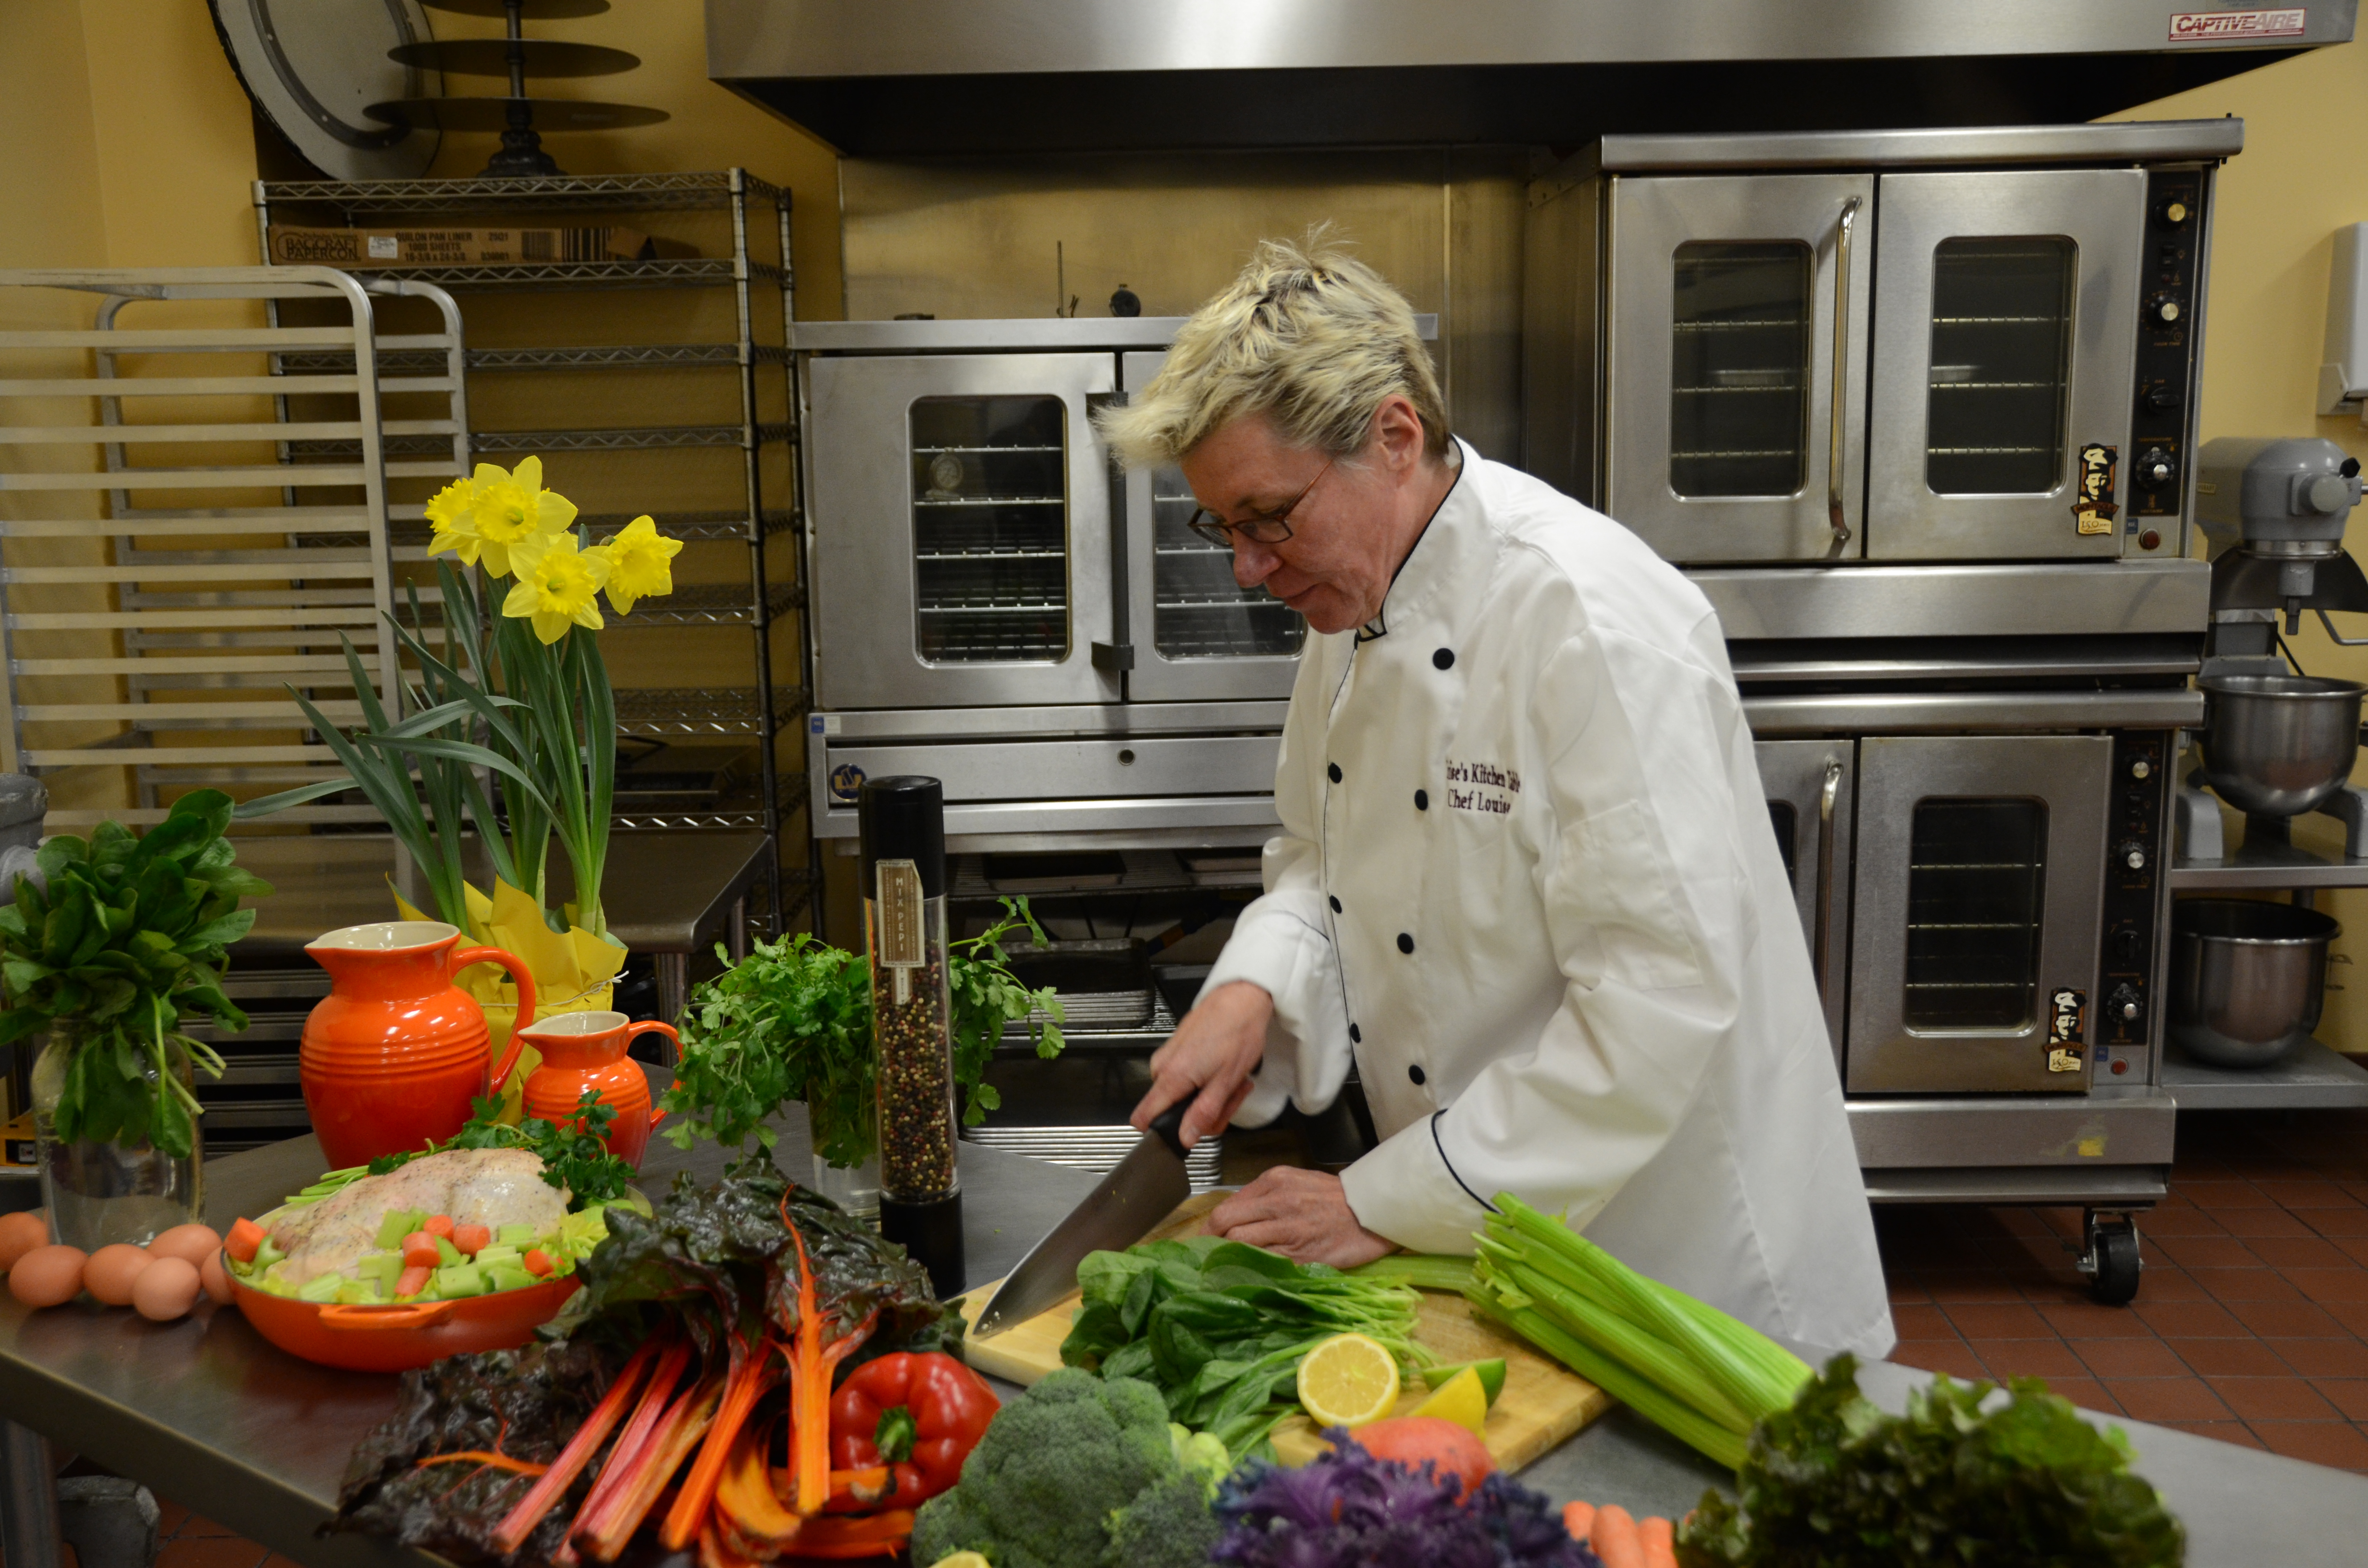 Chef Kitchen Louises Kitchen Table Ceo And Executive Chef Louise Smith